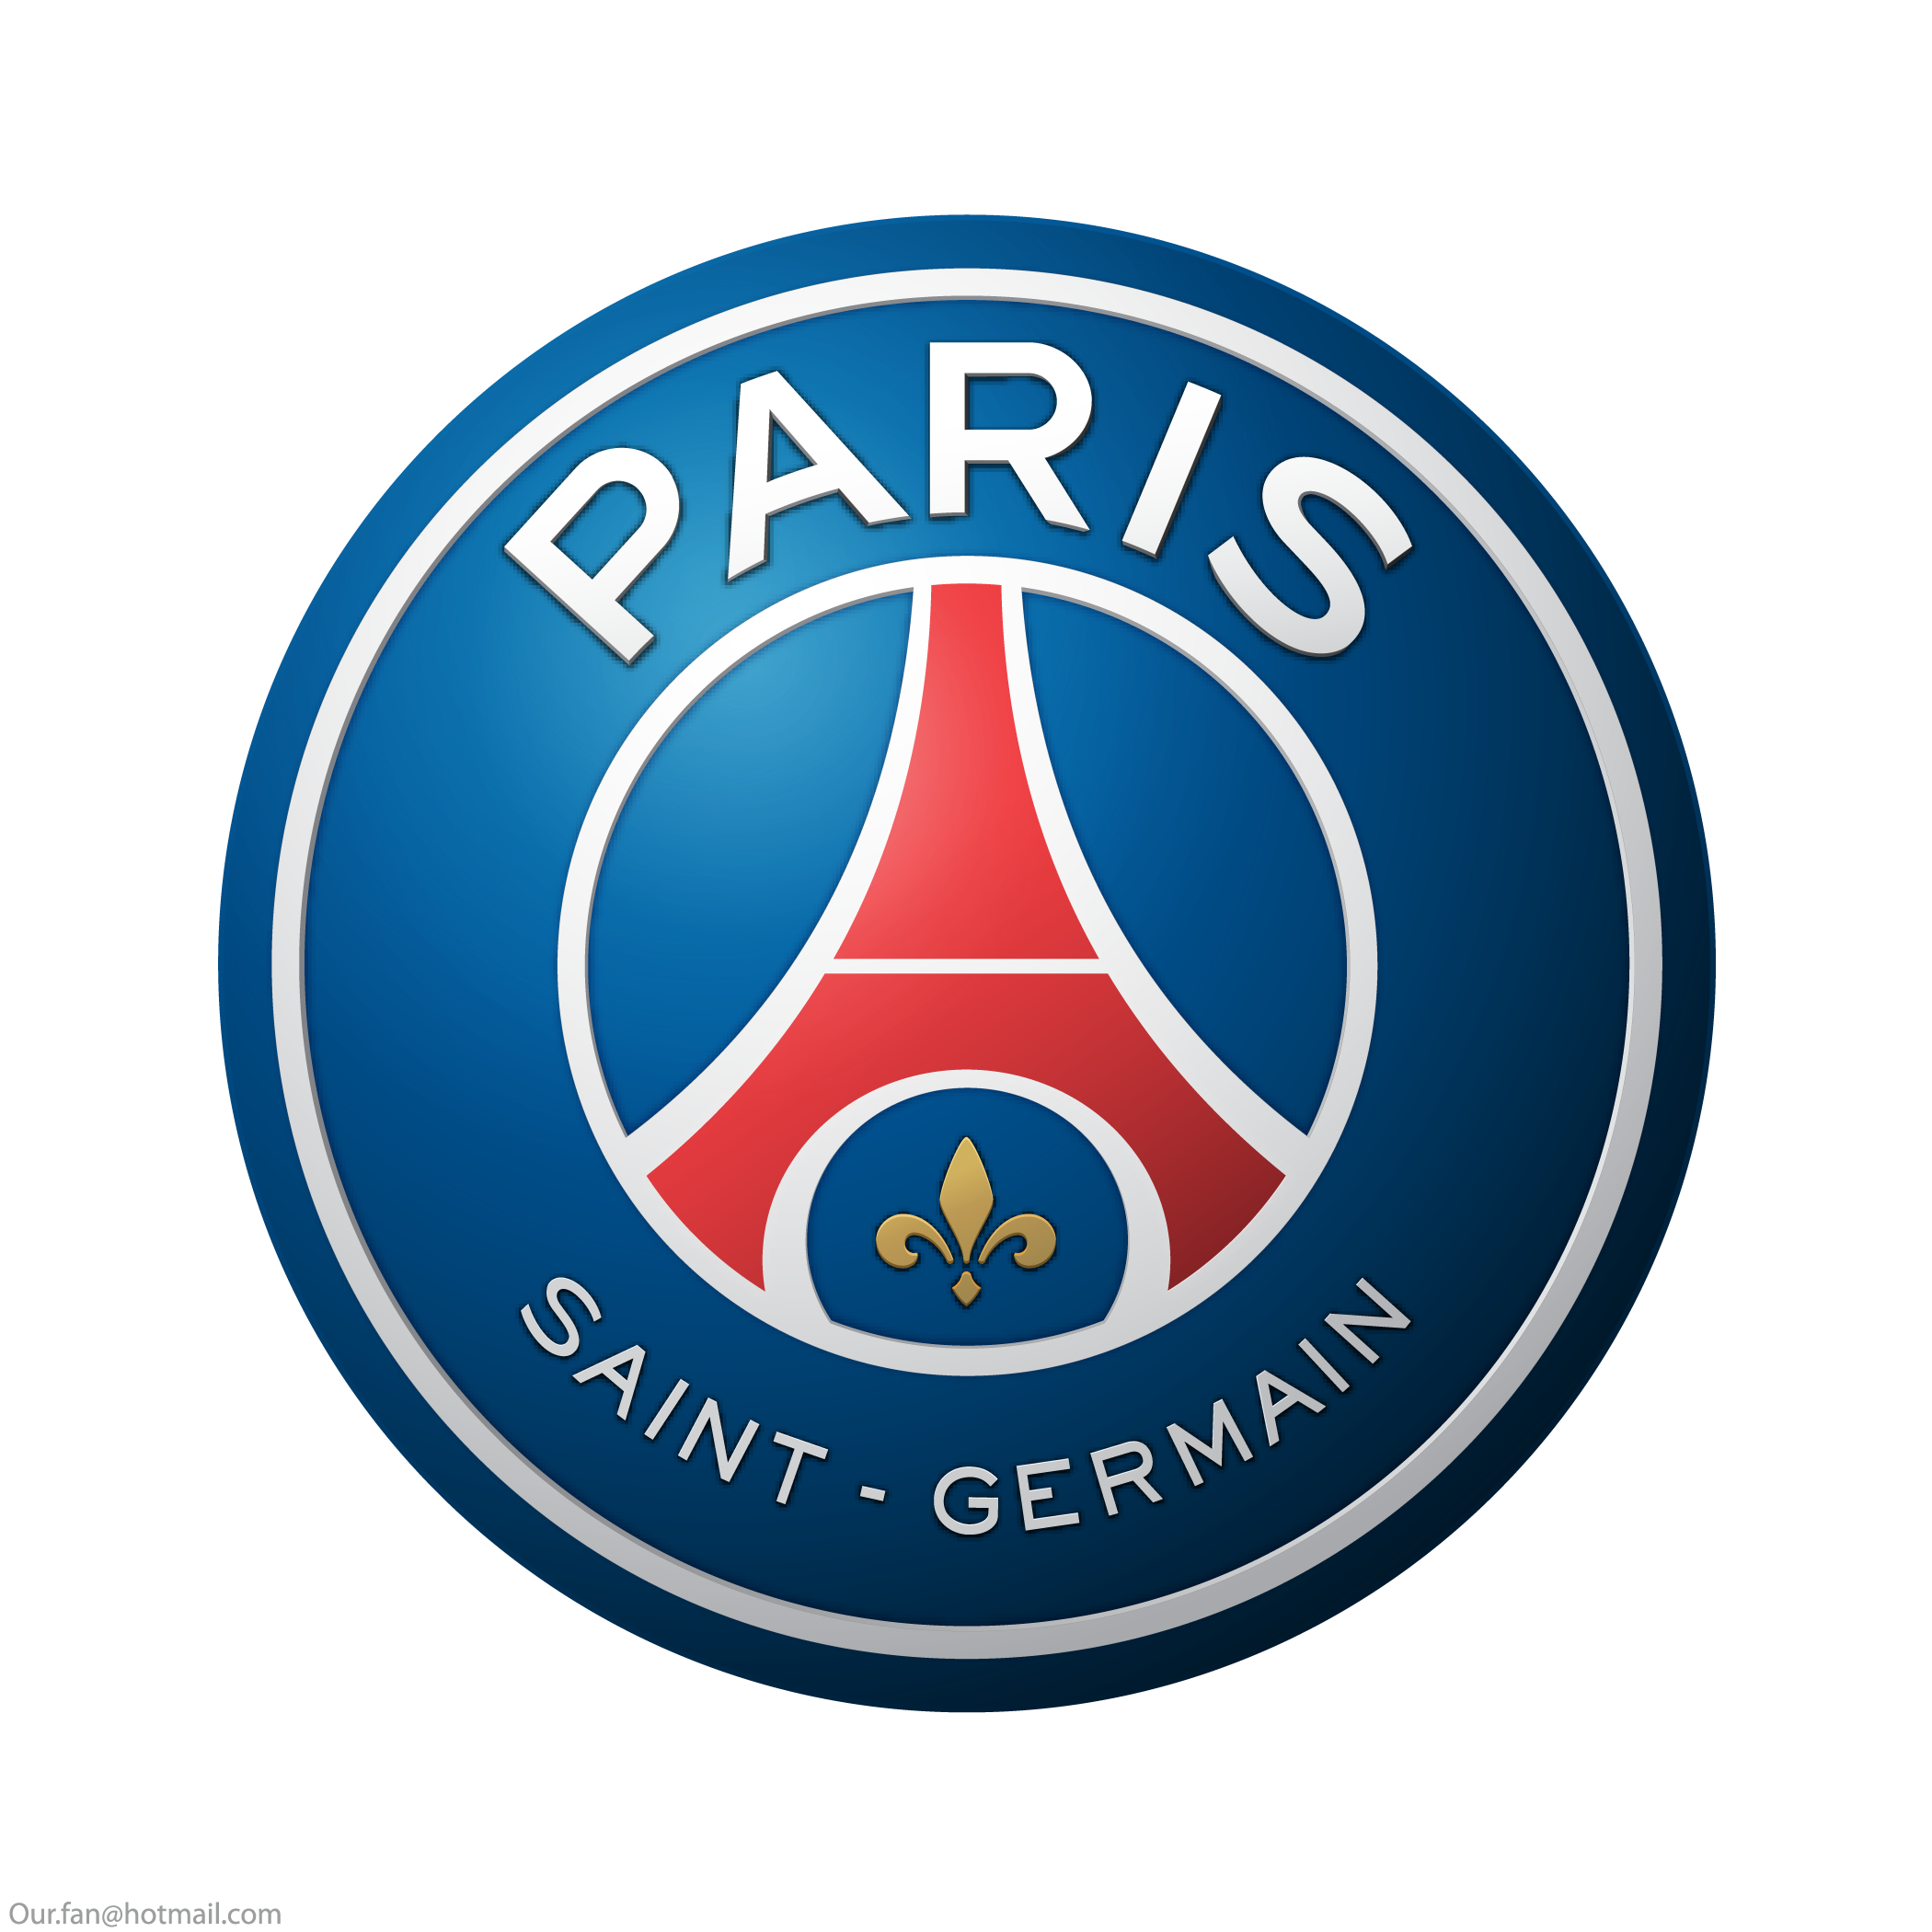 psg logo escudo paris saint germain 1 - PSG Logo - Escudo - Paris Saint-Germain Logo - Escudo